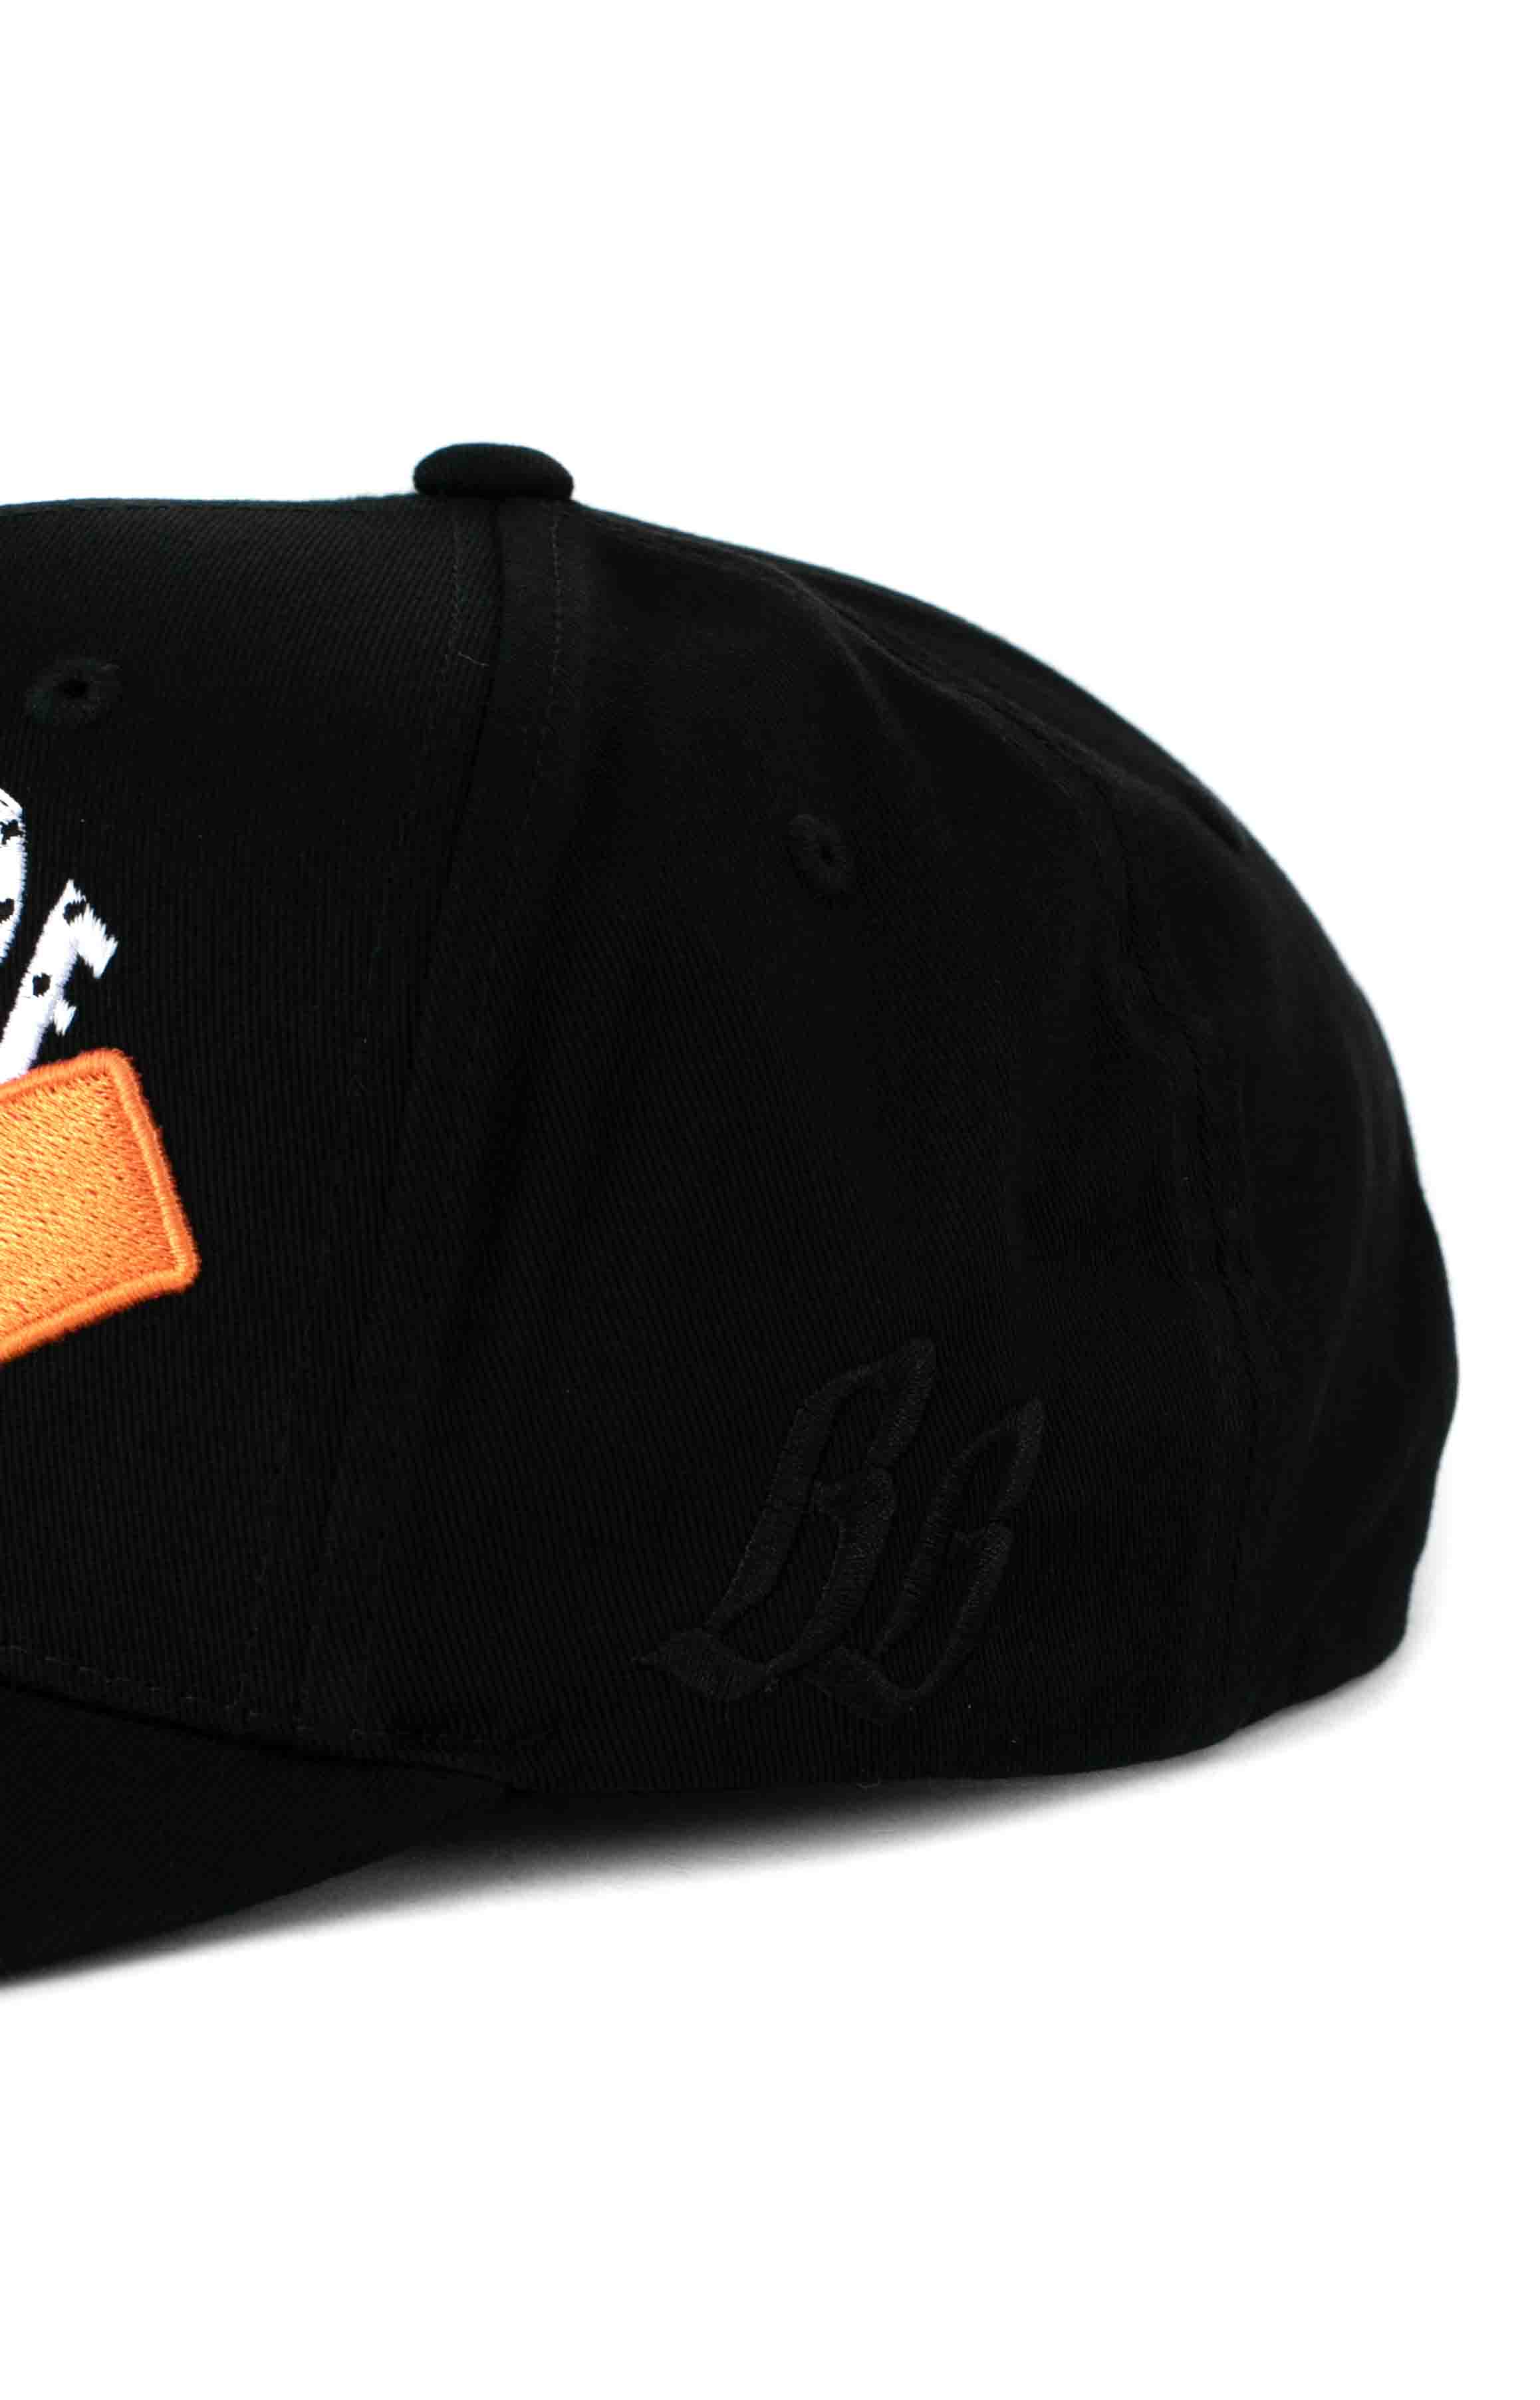 BB Arch Snap-Back Hat - Black 3